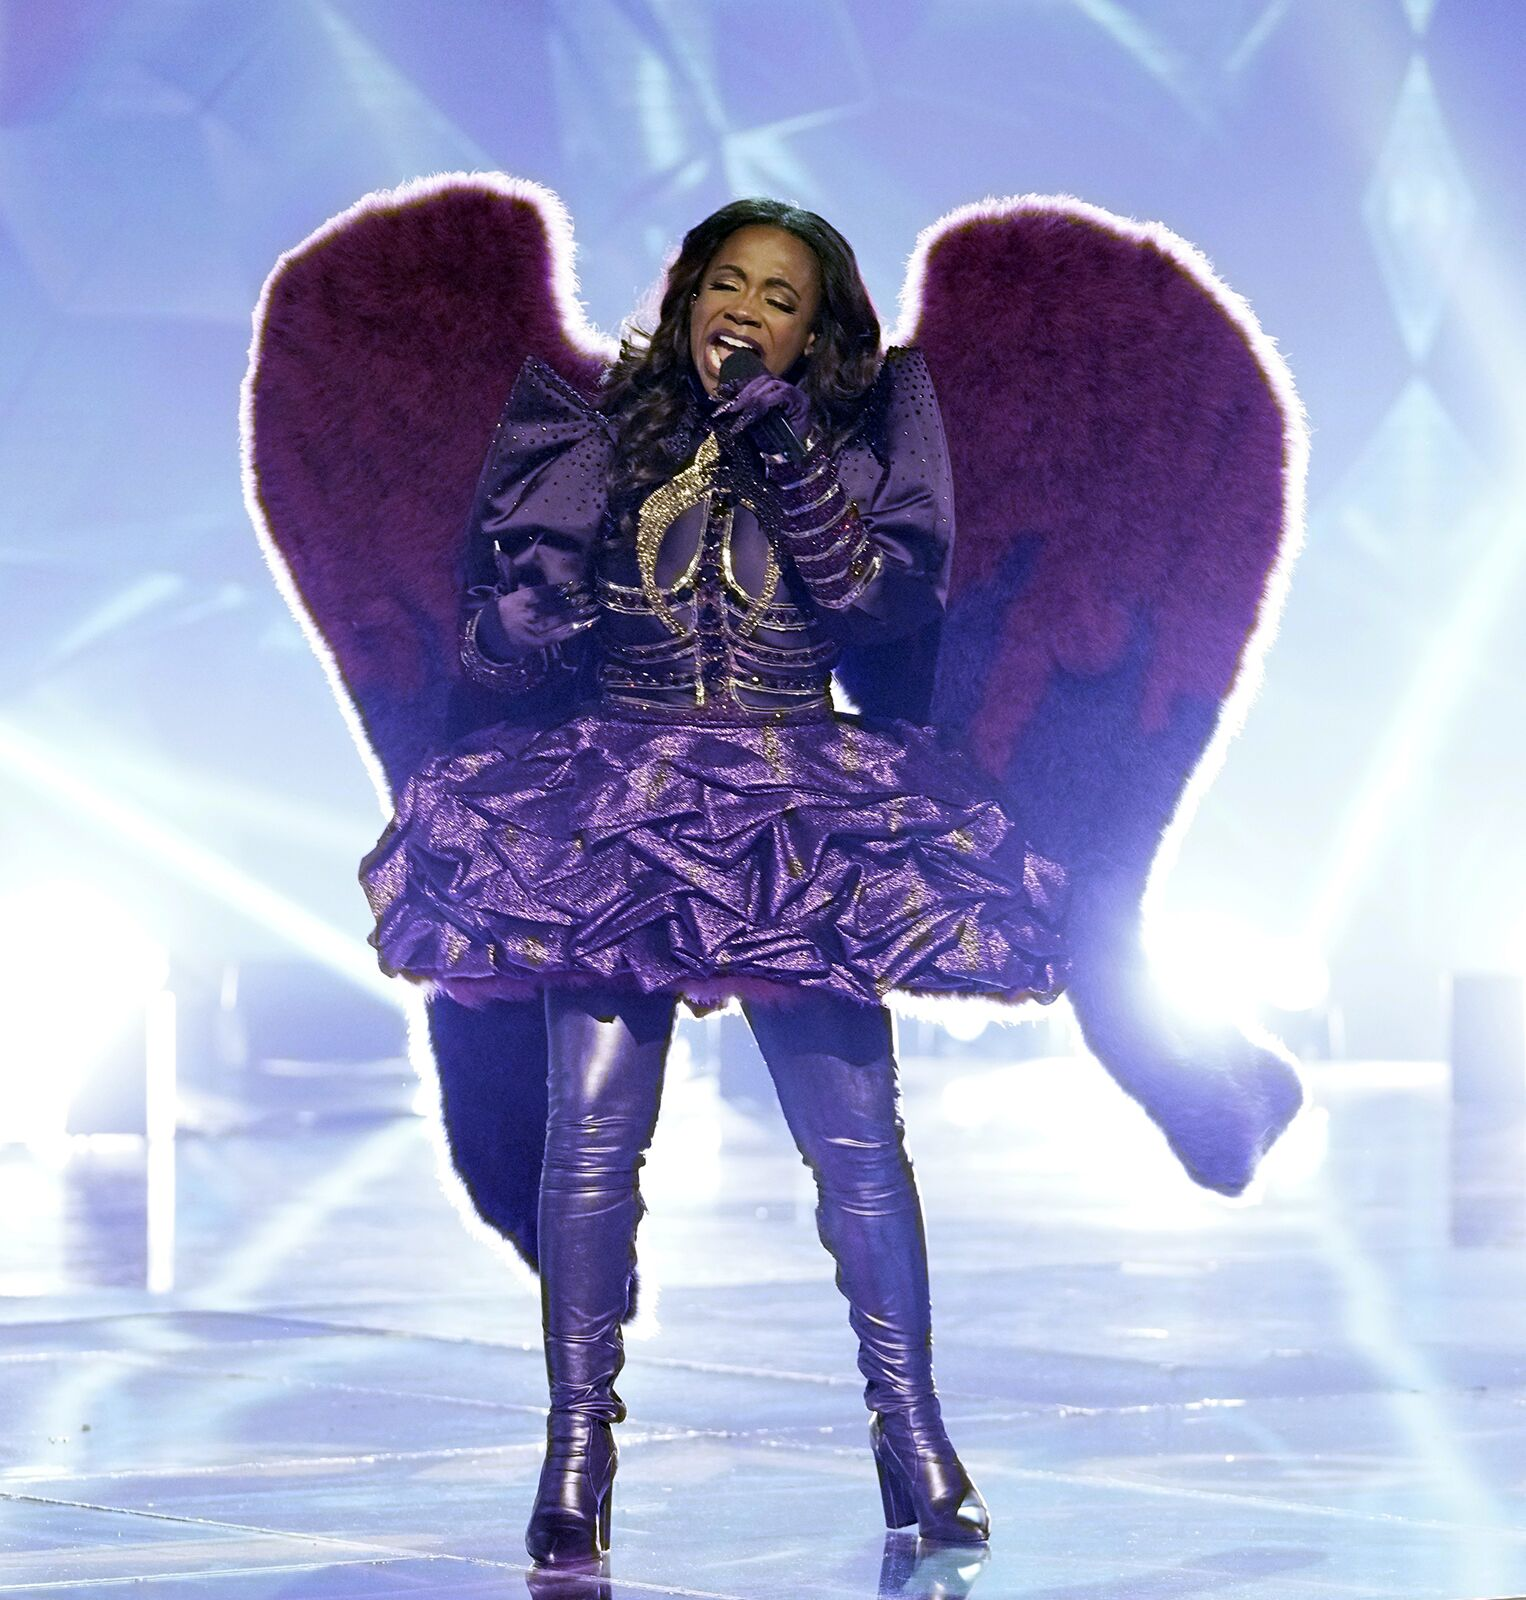 """Kandi Burruss singing as """"The Night Angel"""" in one of the episodes of """"The Masked Singer"""" on February 28, 2020 